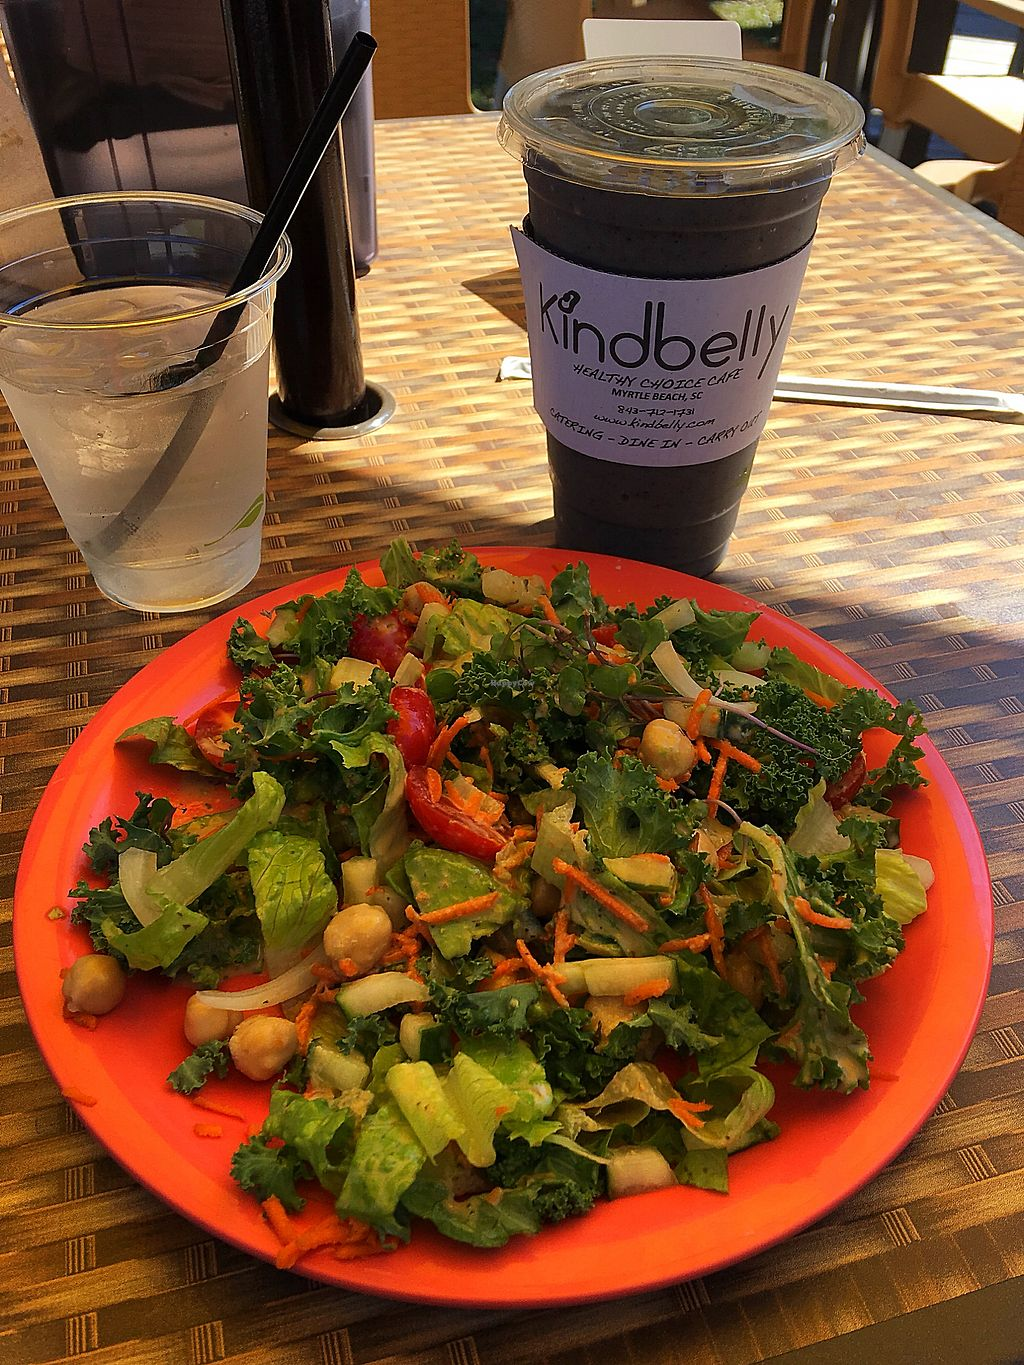 """Photo of Kindbelly  by <a href=""""/members/profile/HeatherArmstrong"""">HeatherArmstrong</a> <br/>Green Goddess Salad  <br/> October 1, 2017  - <a href='/contact/abuse/image/82352/310801'>Report</a>"""